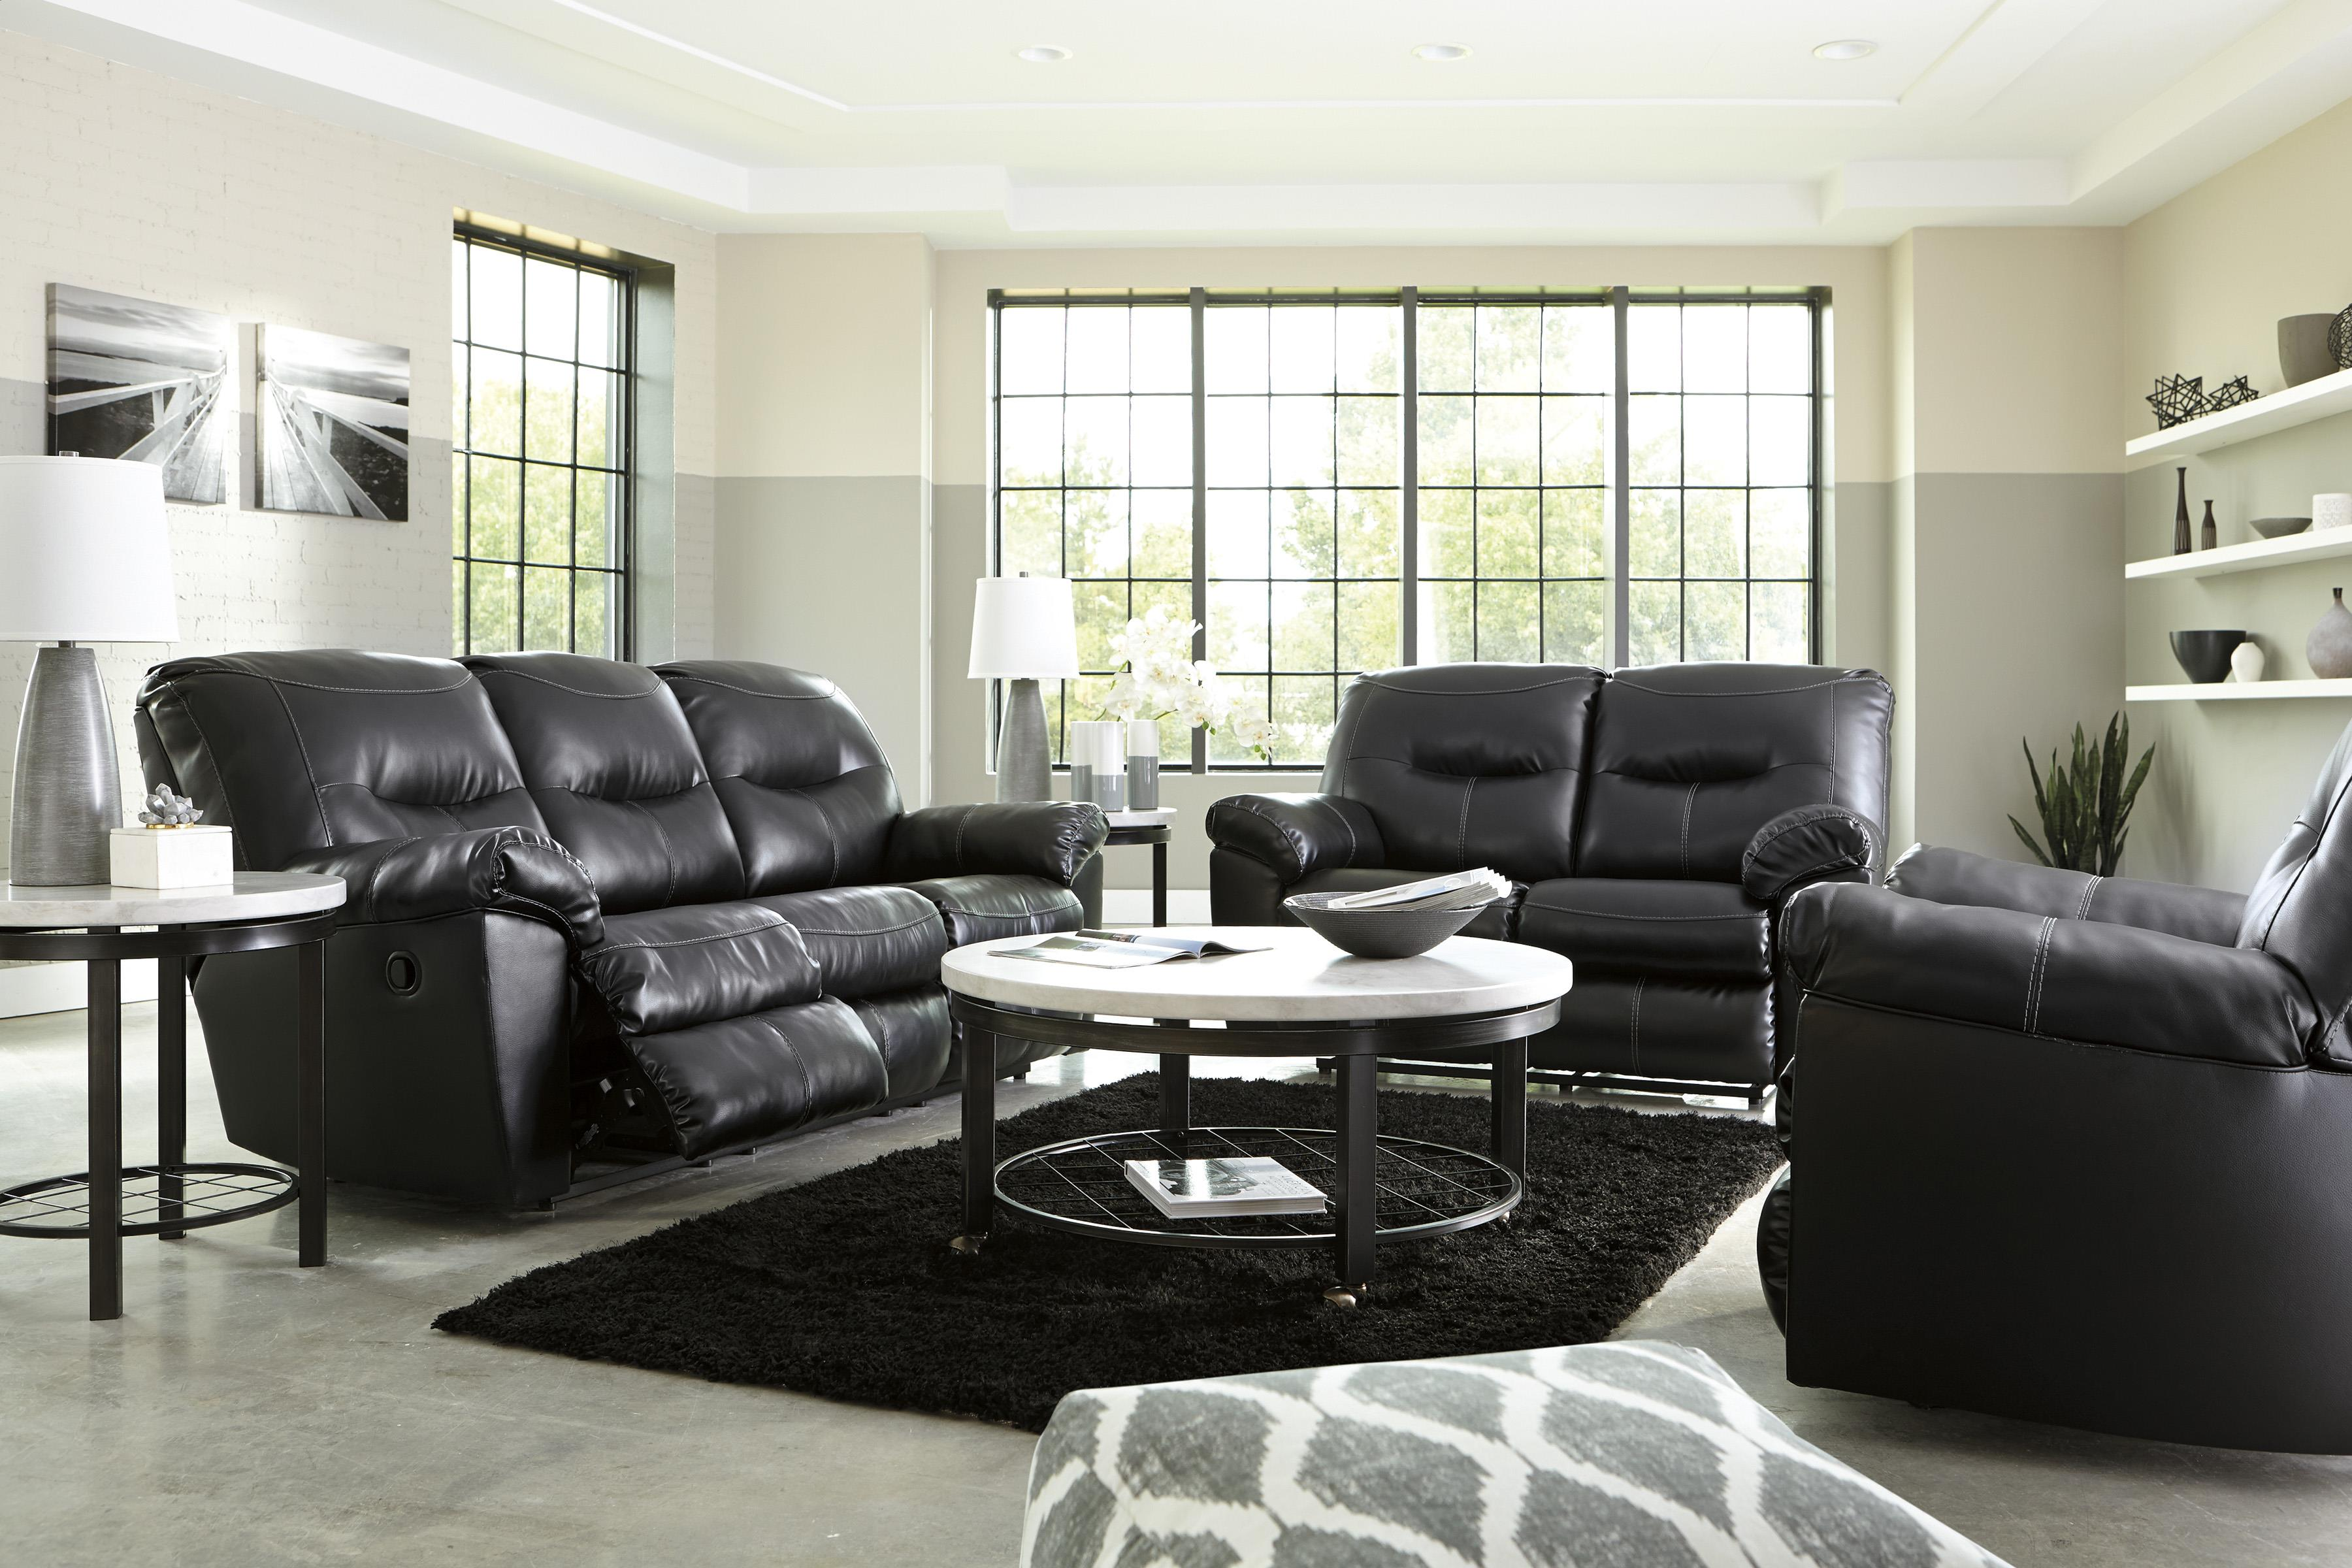 Delicieux Signature Design By Ashley Kilzer DuraBlend® Reclining Living Room Group    Item Number: 84701